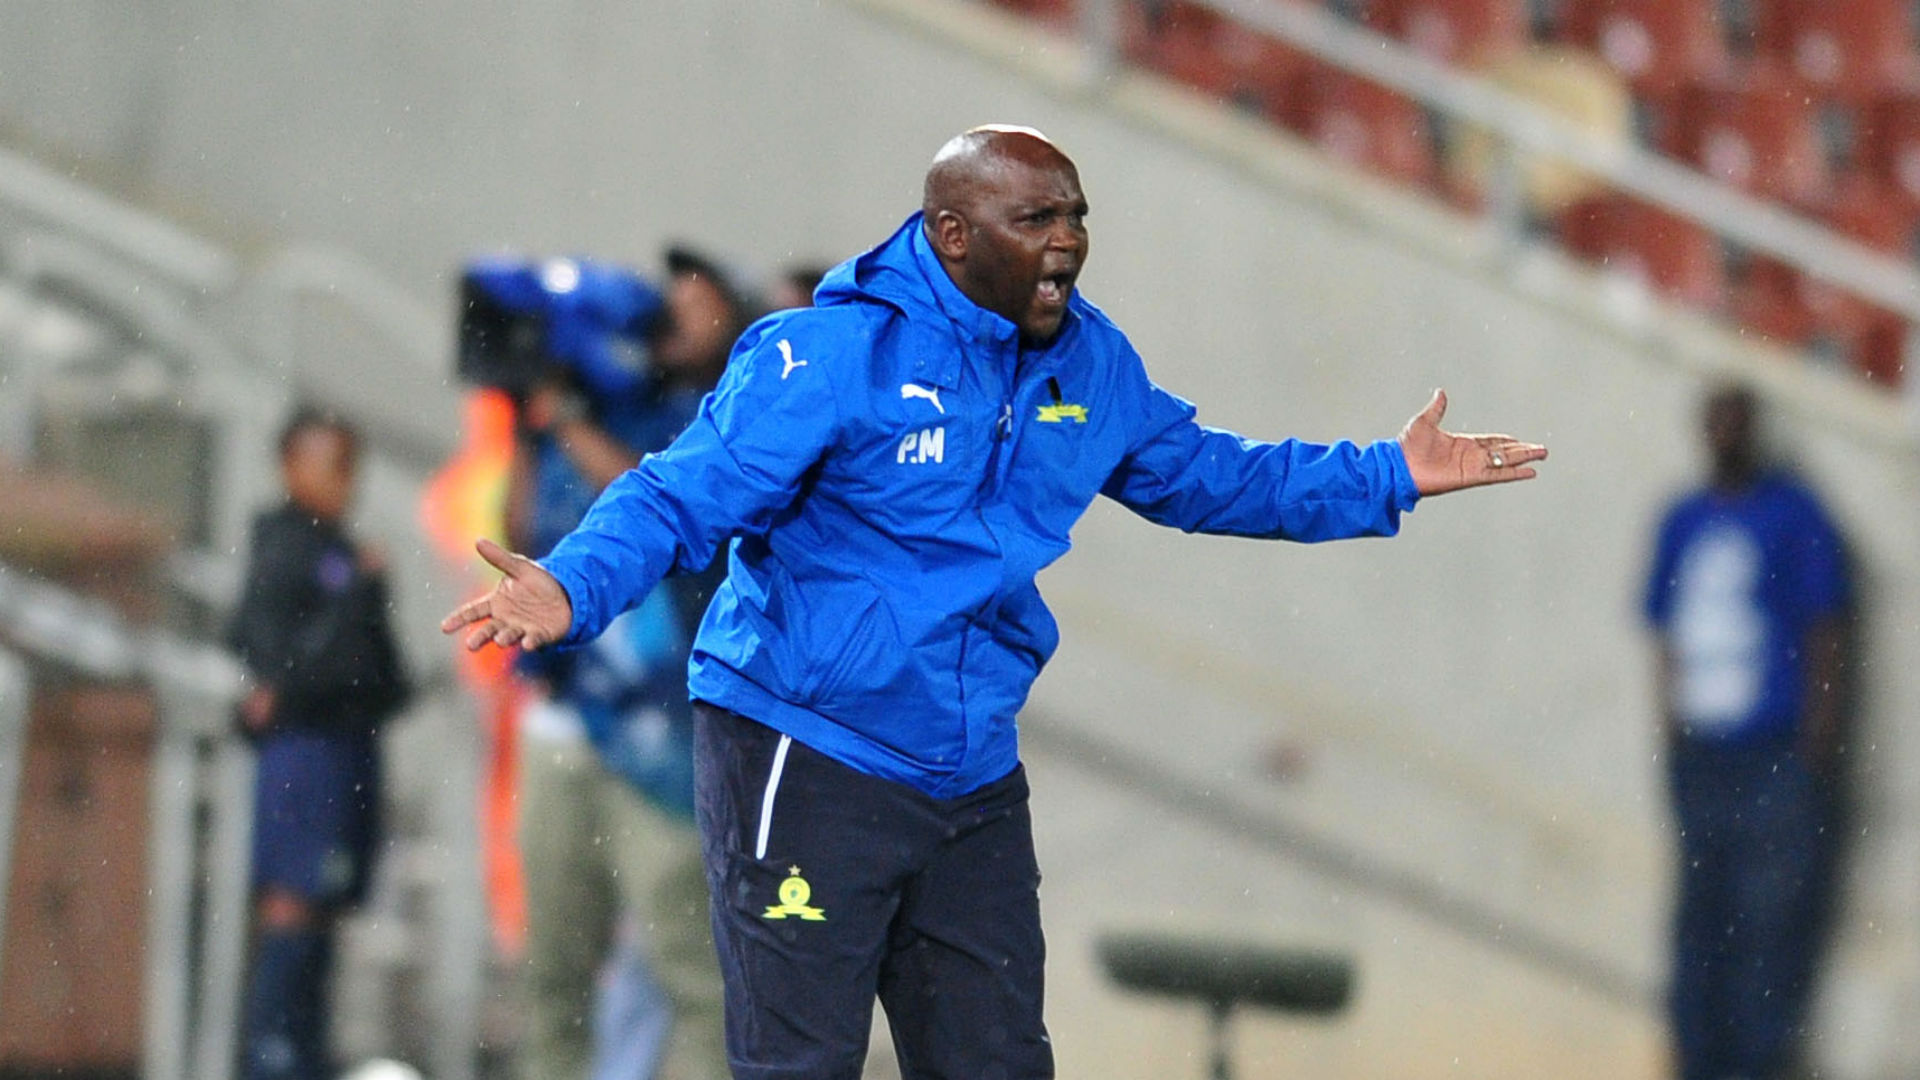 If you're ill-disciplined then you cannot play at Mamelodi Sundowns - Mosimane on Rantie's departure